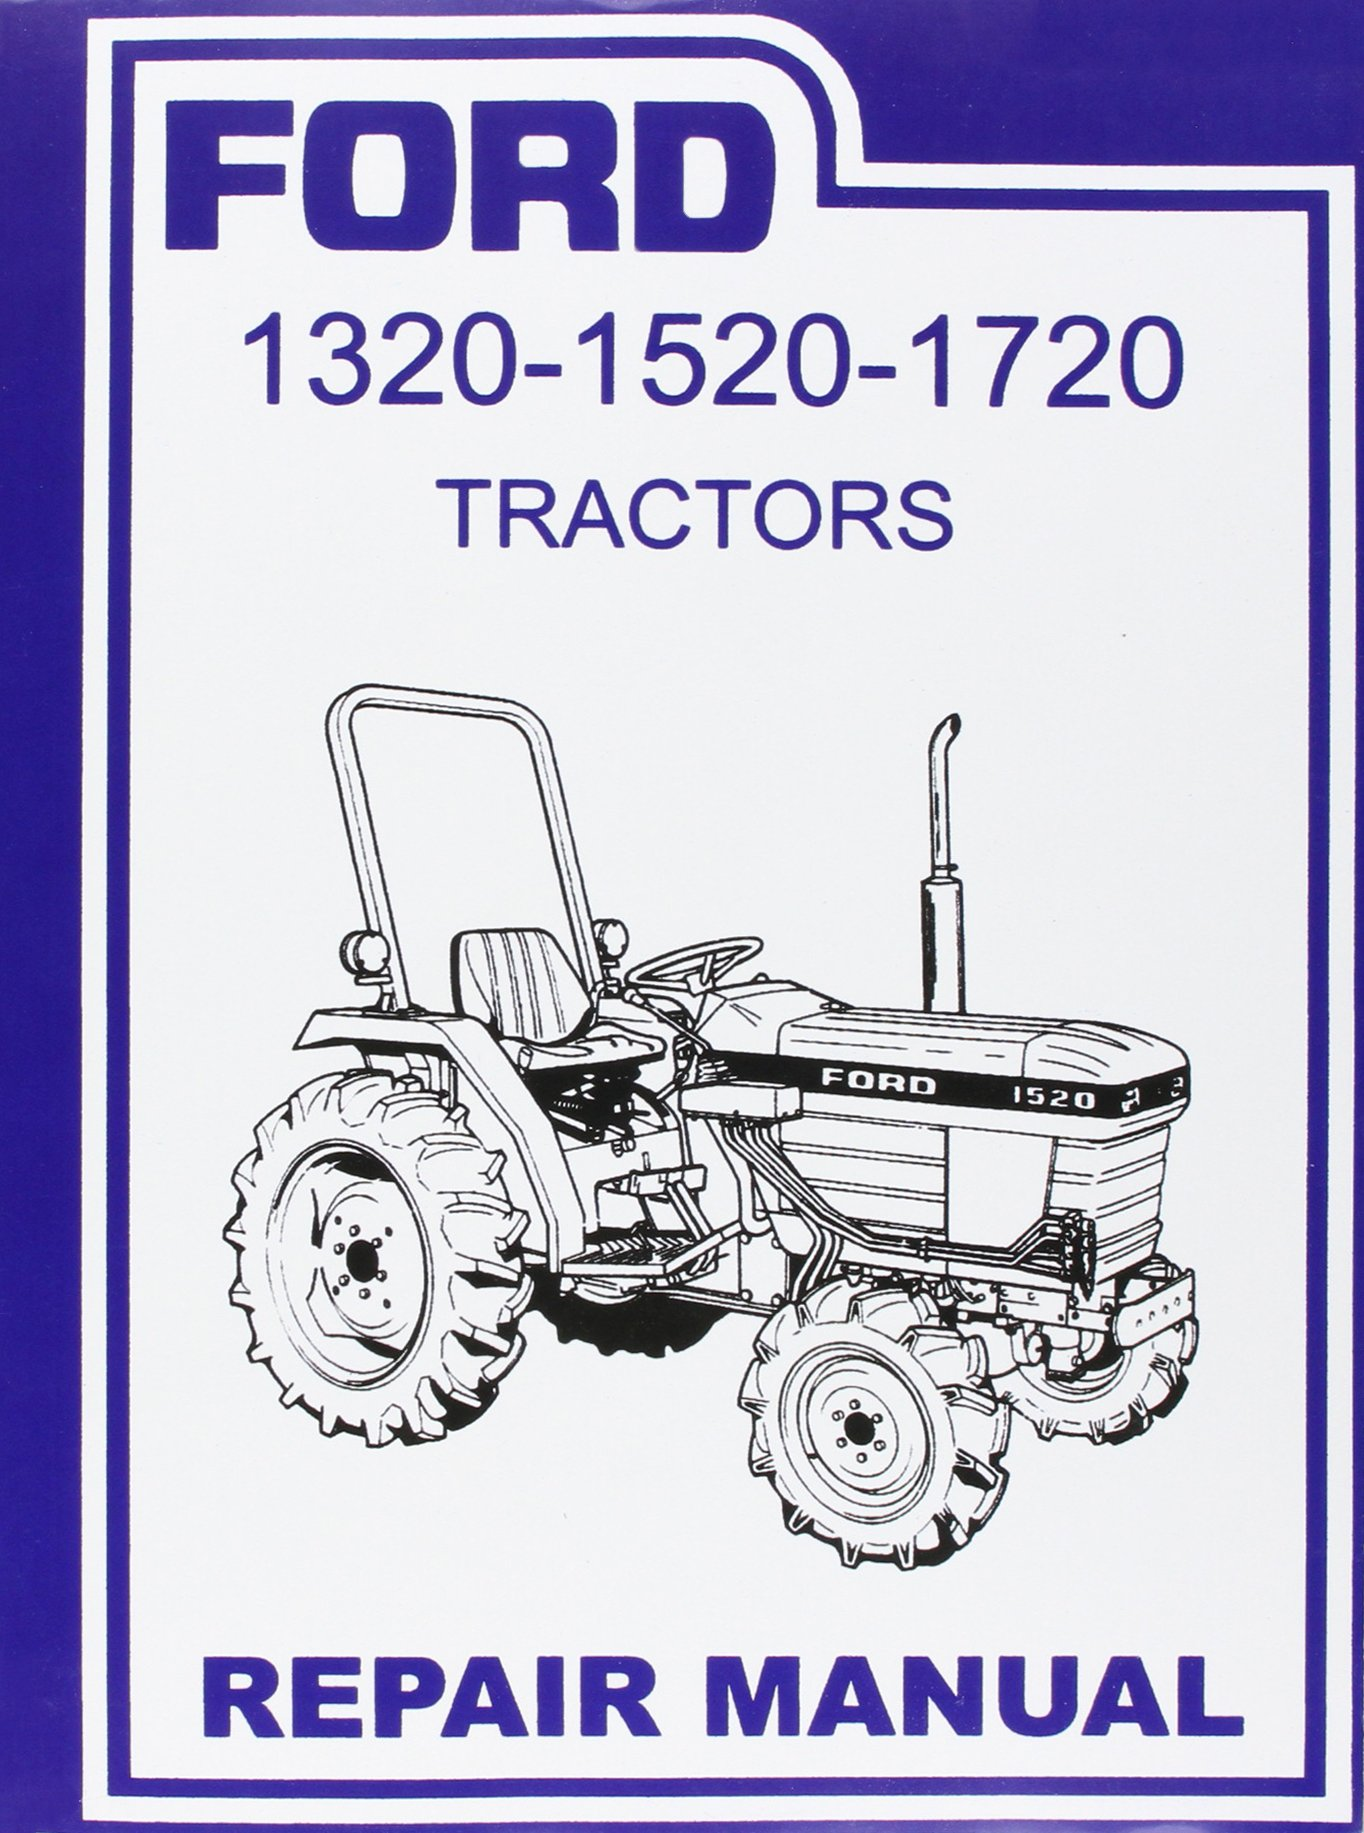 FORD TRACTOR 1320, 1520, 1720 FACTORY REPAIR SHOP & SERVICE MANUAL.  Covering Years 1987 1988 1989 1990 1991 1992 1993 1994 1995 1996 1997 1998  1999 2000: ...